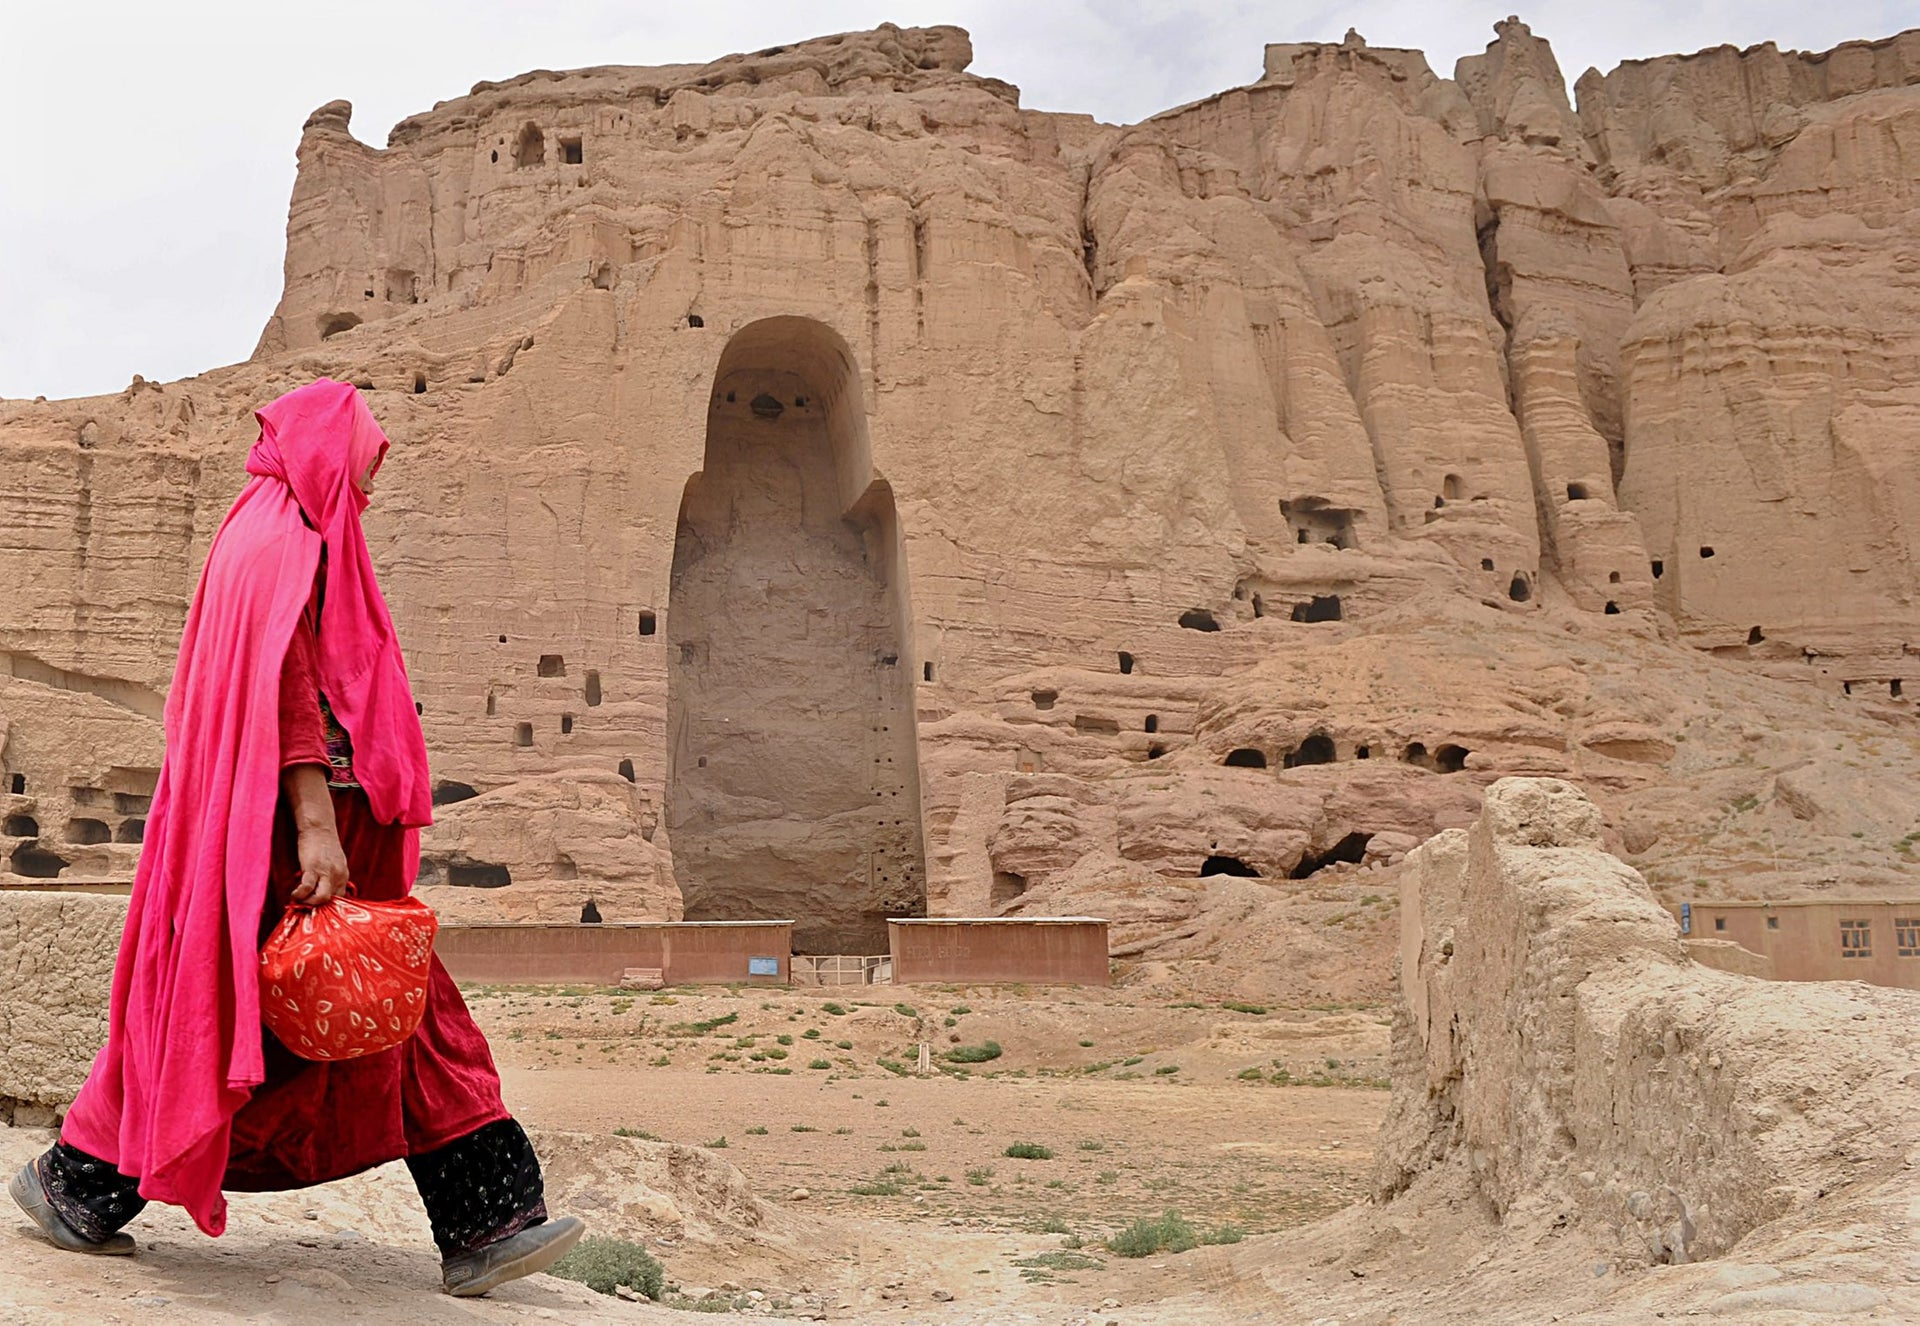 A Hazara Afghan woman walks past the ruins of the ancient Buddha statues that once stood in the city of Bamiyan, August 1, 2010.